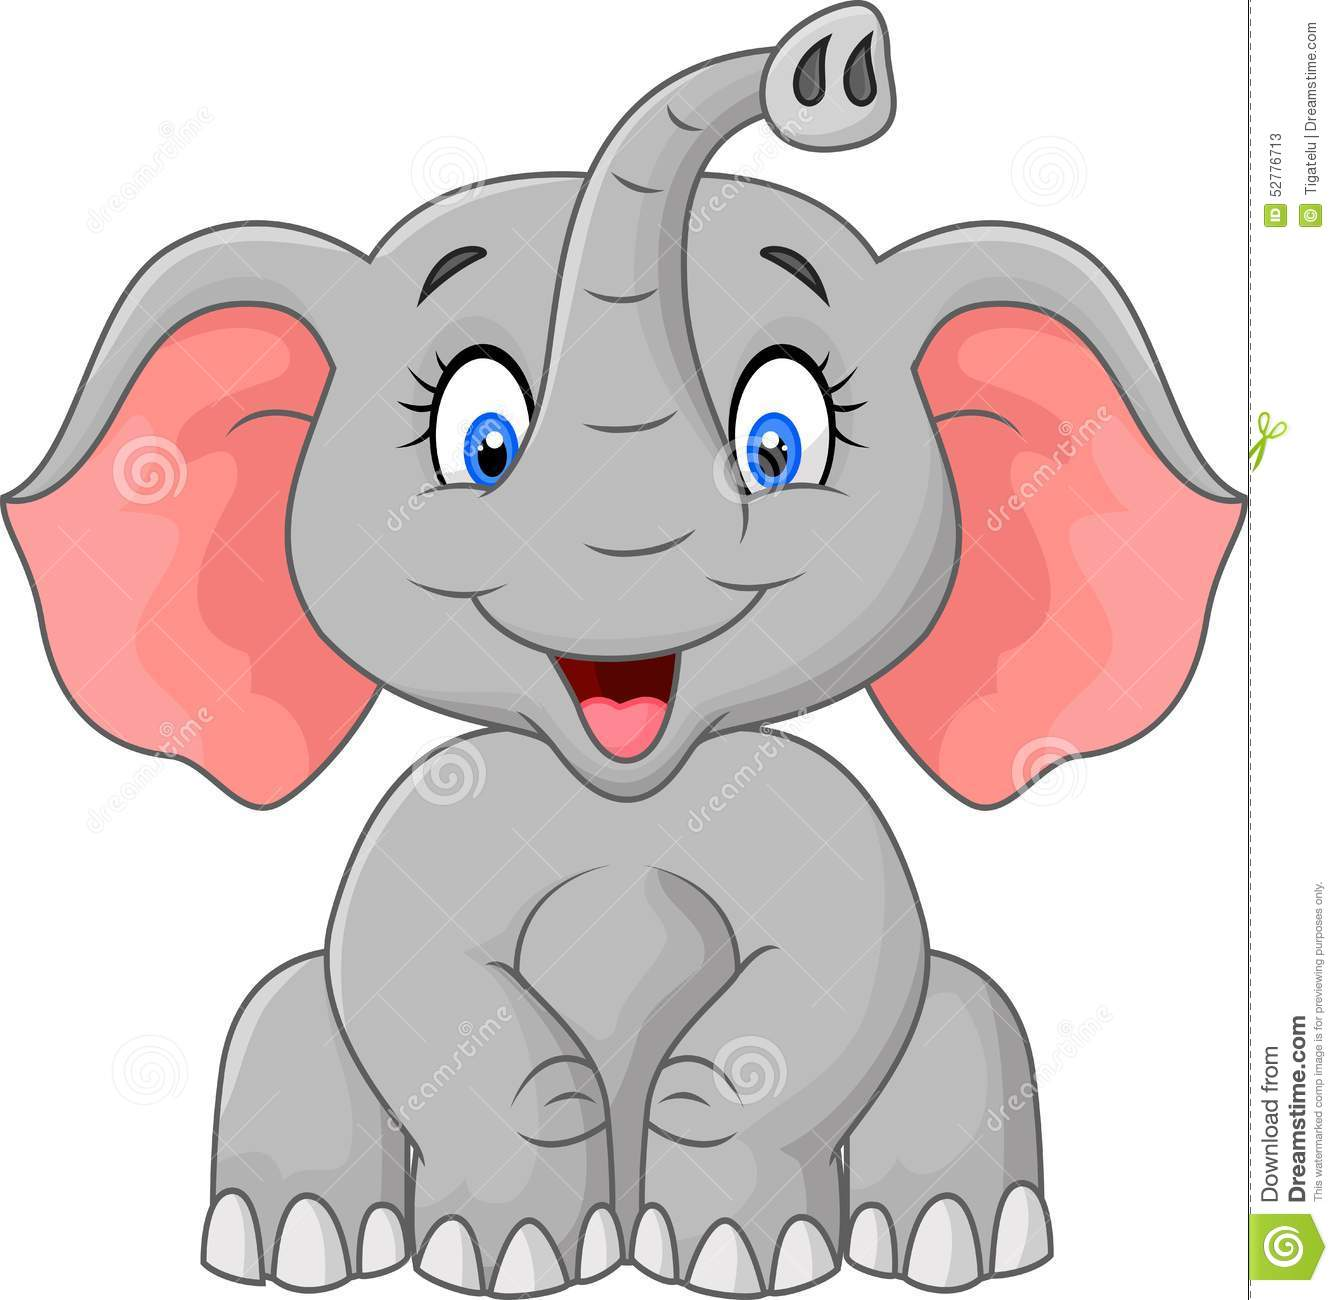 Cute Elephant Cartoon Sitting Stock Vector Image 52776713